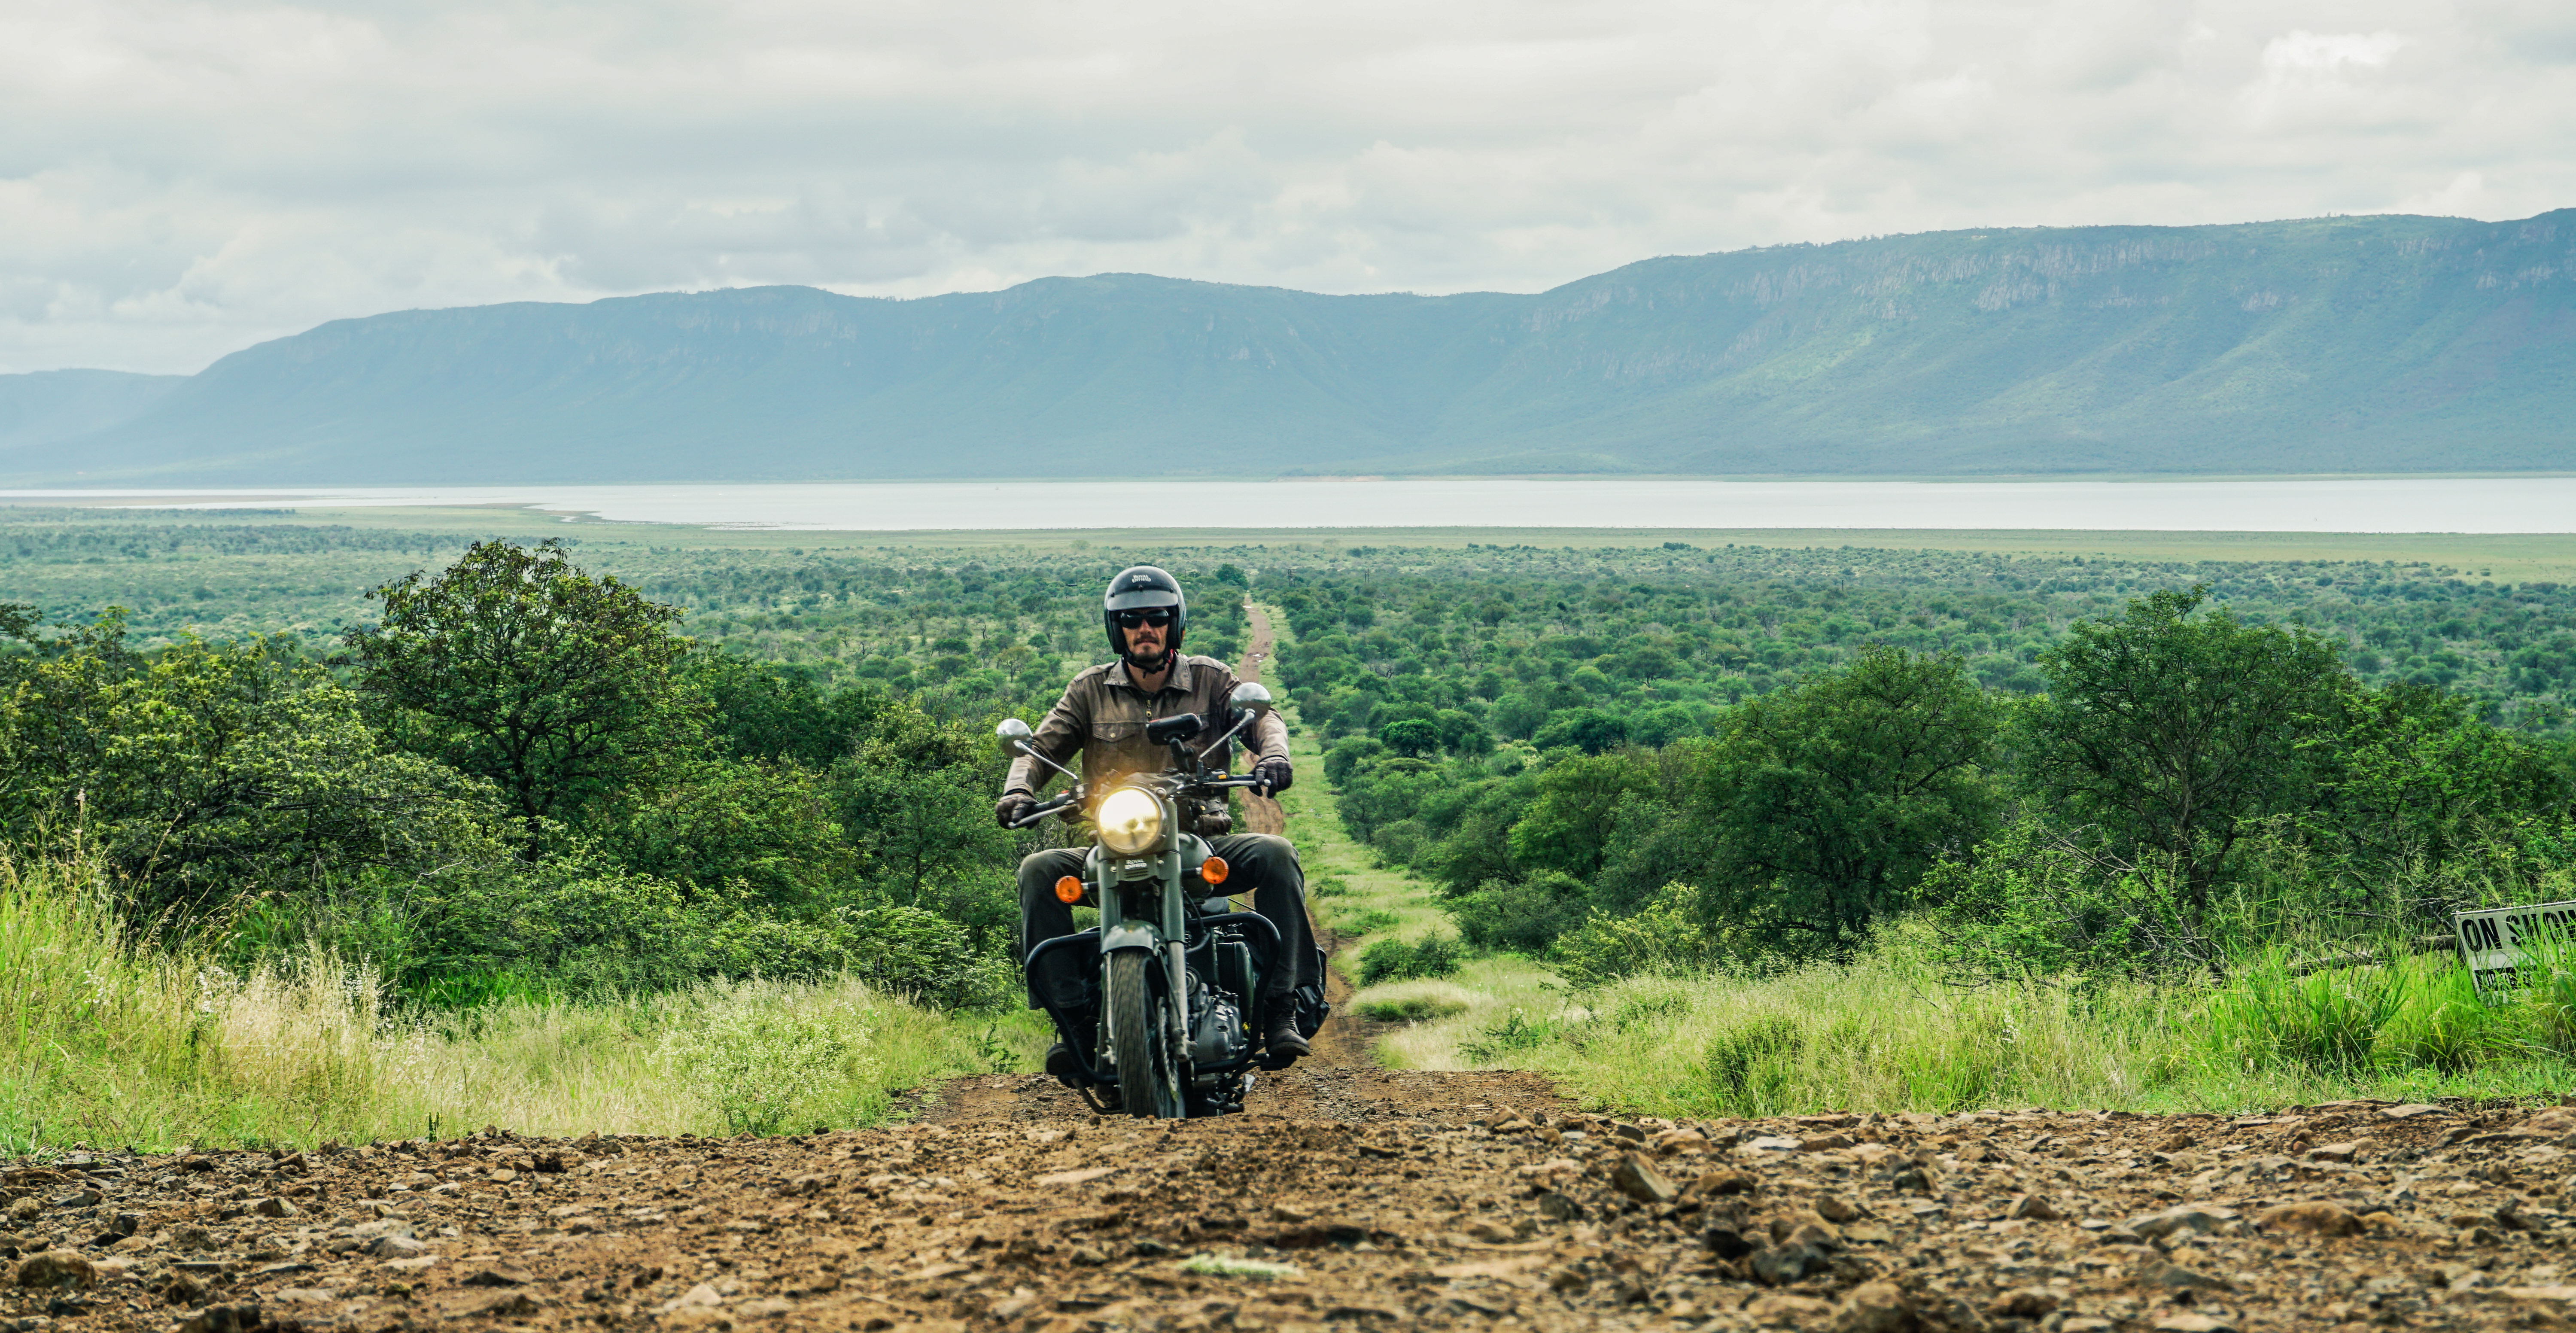 Motorcycle road trip South Africa - The Wild Odyssey